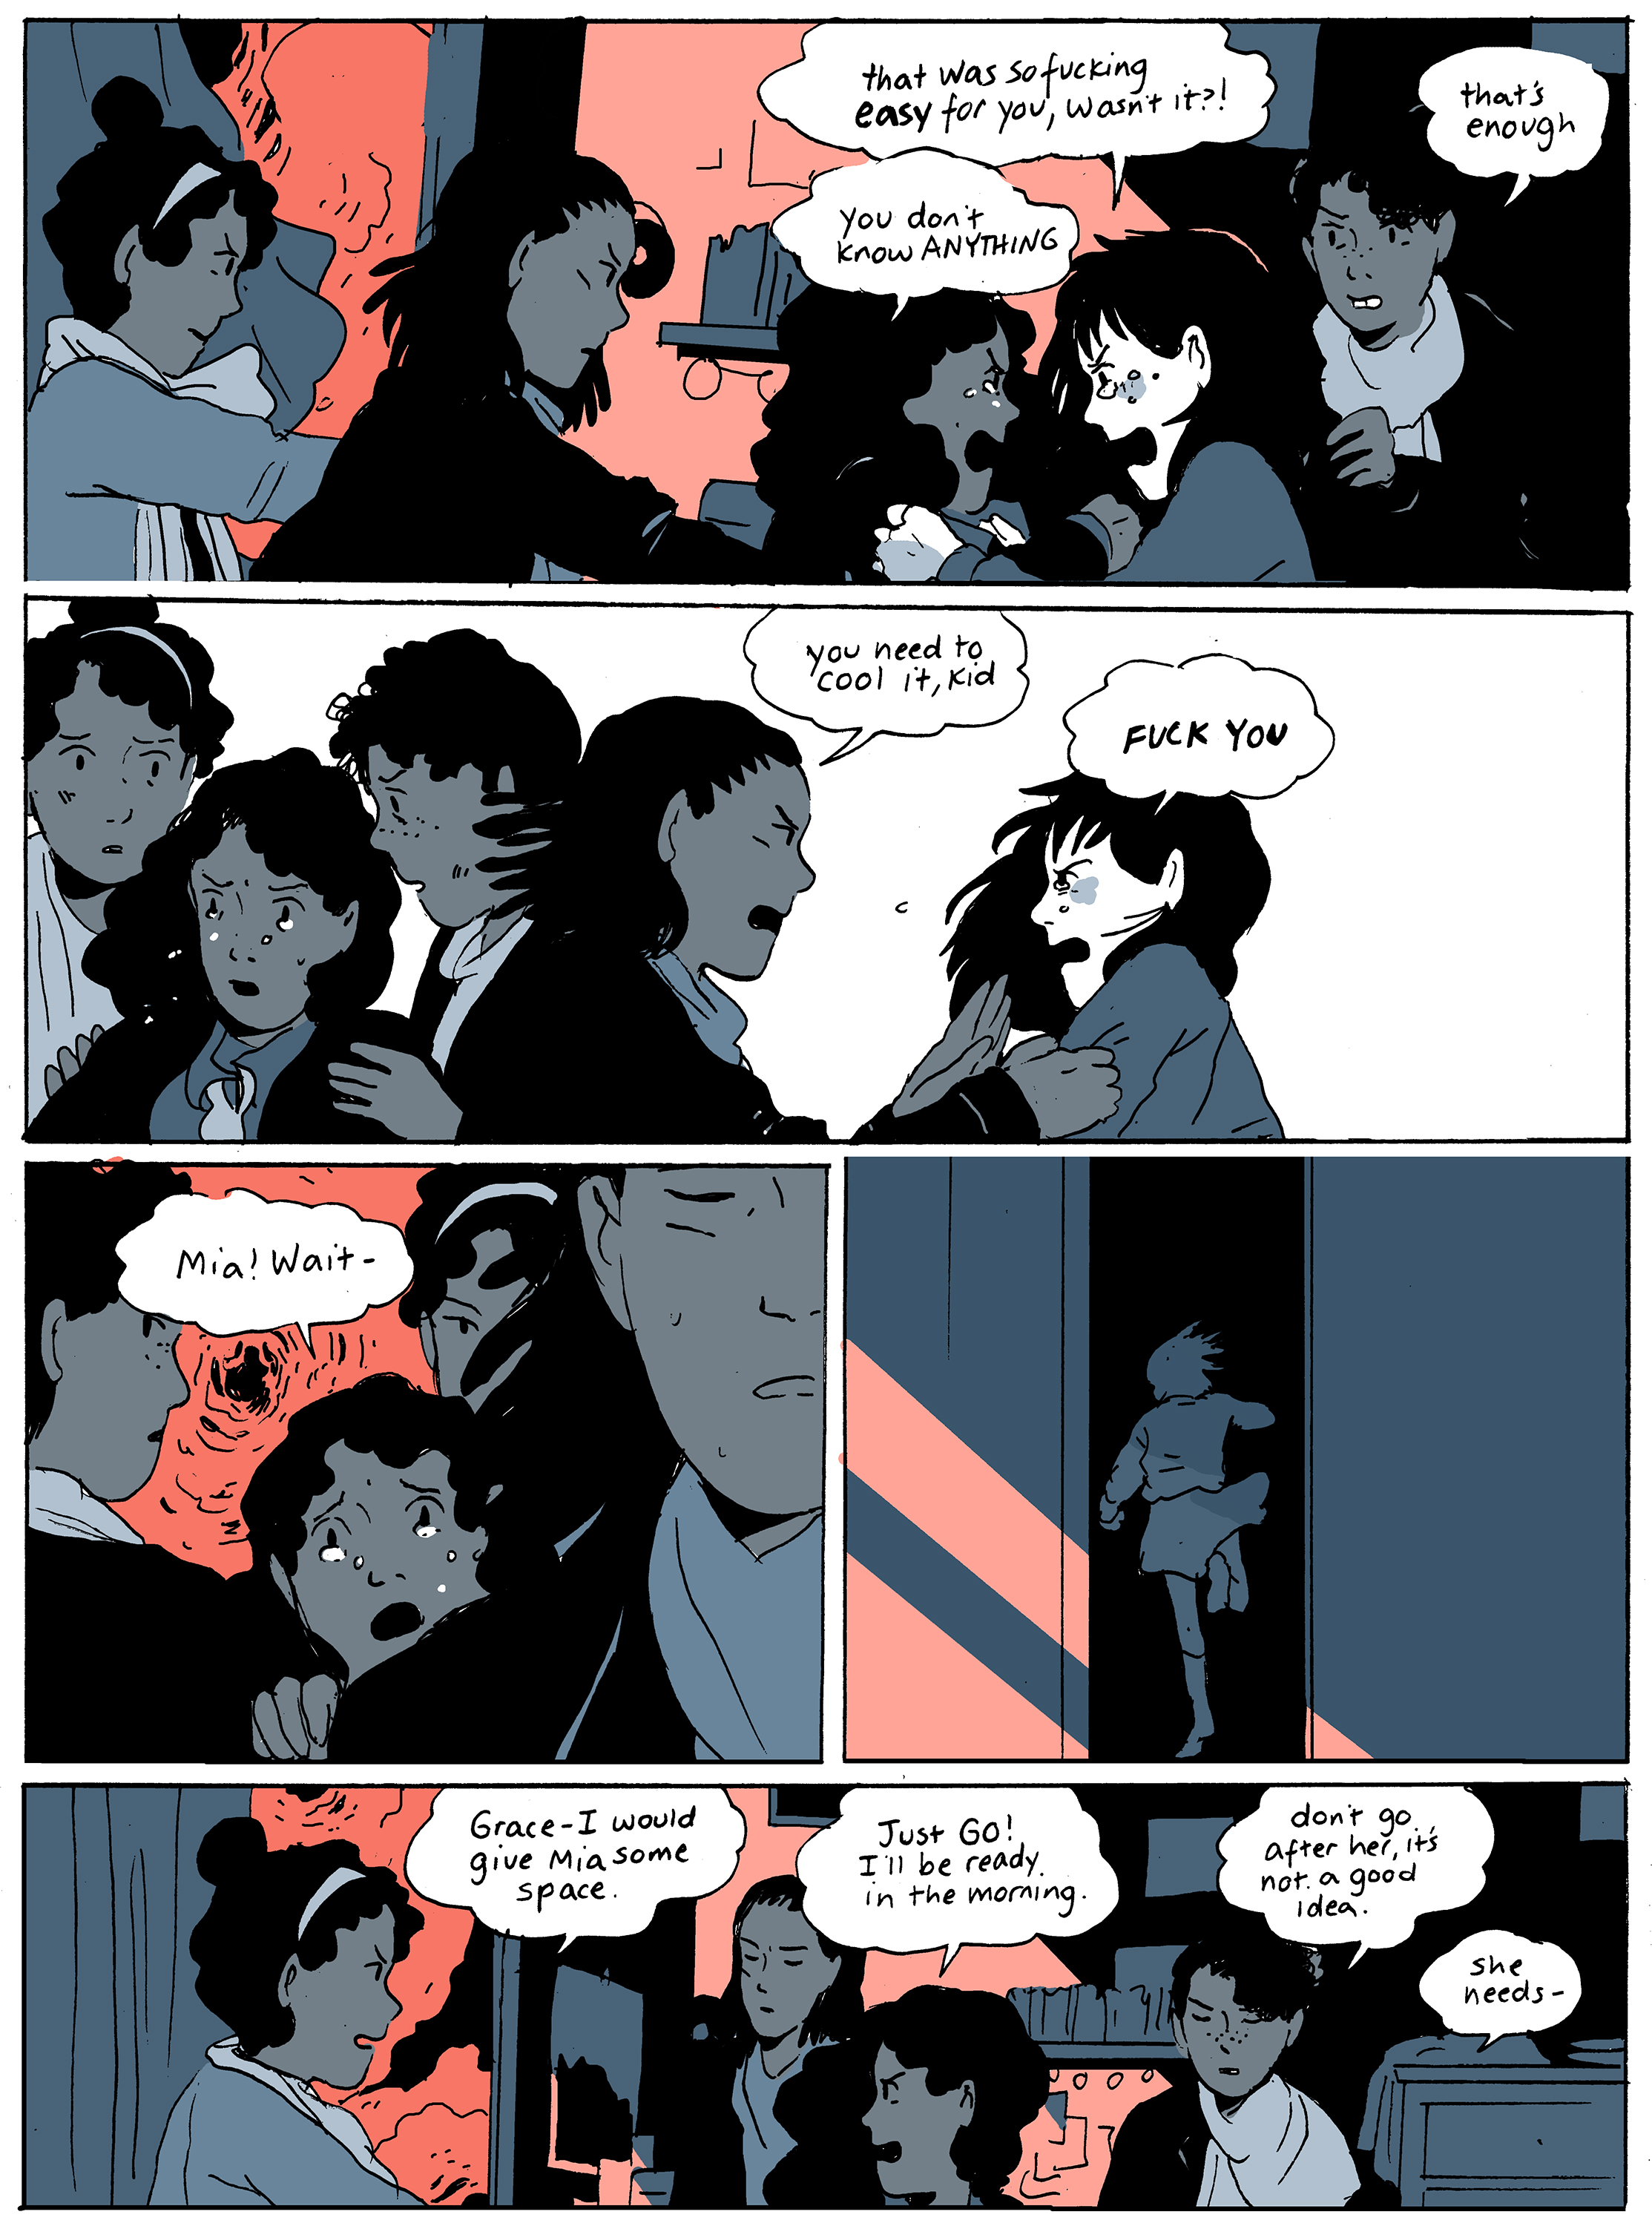 chapter12_page14.jpg